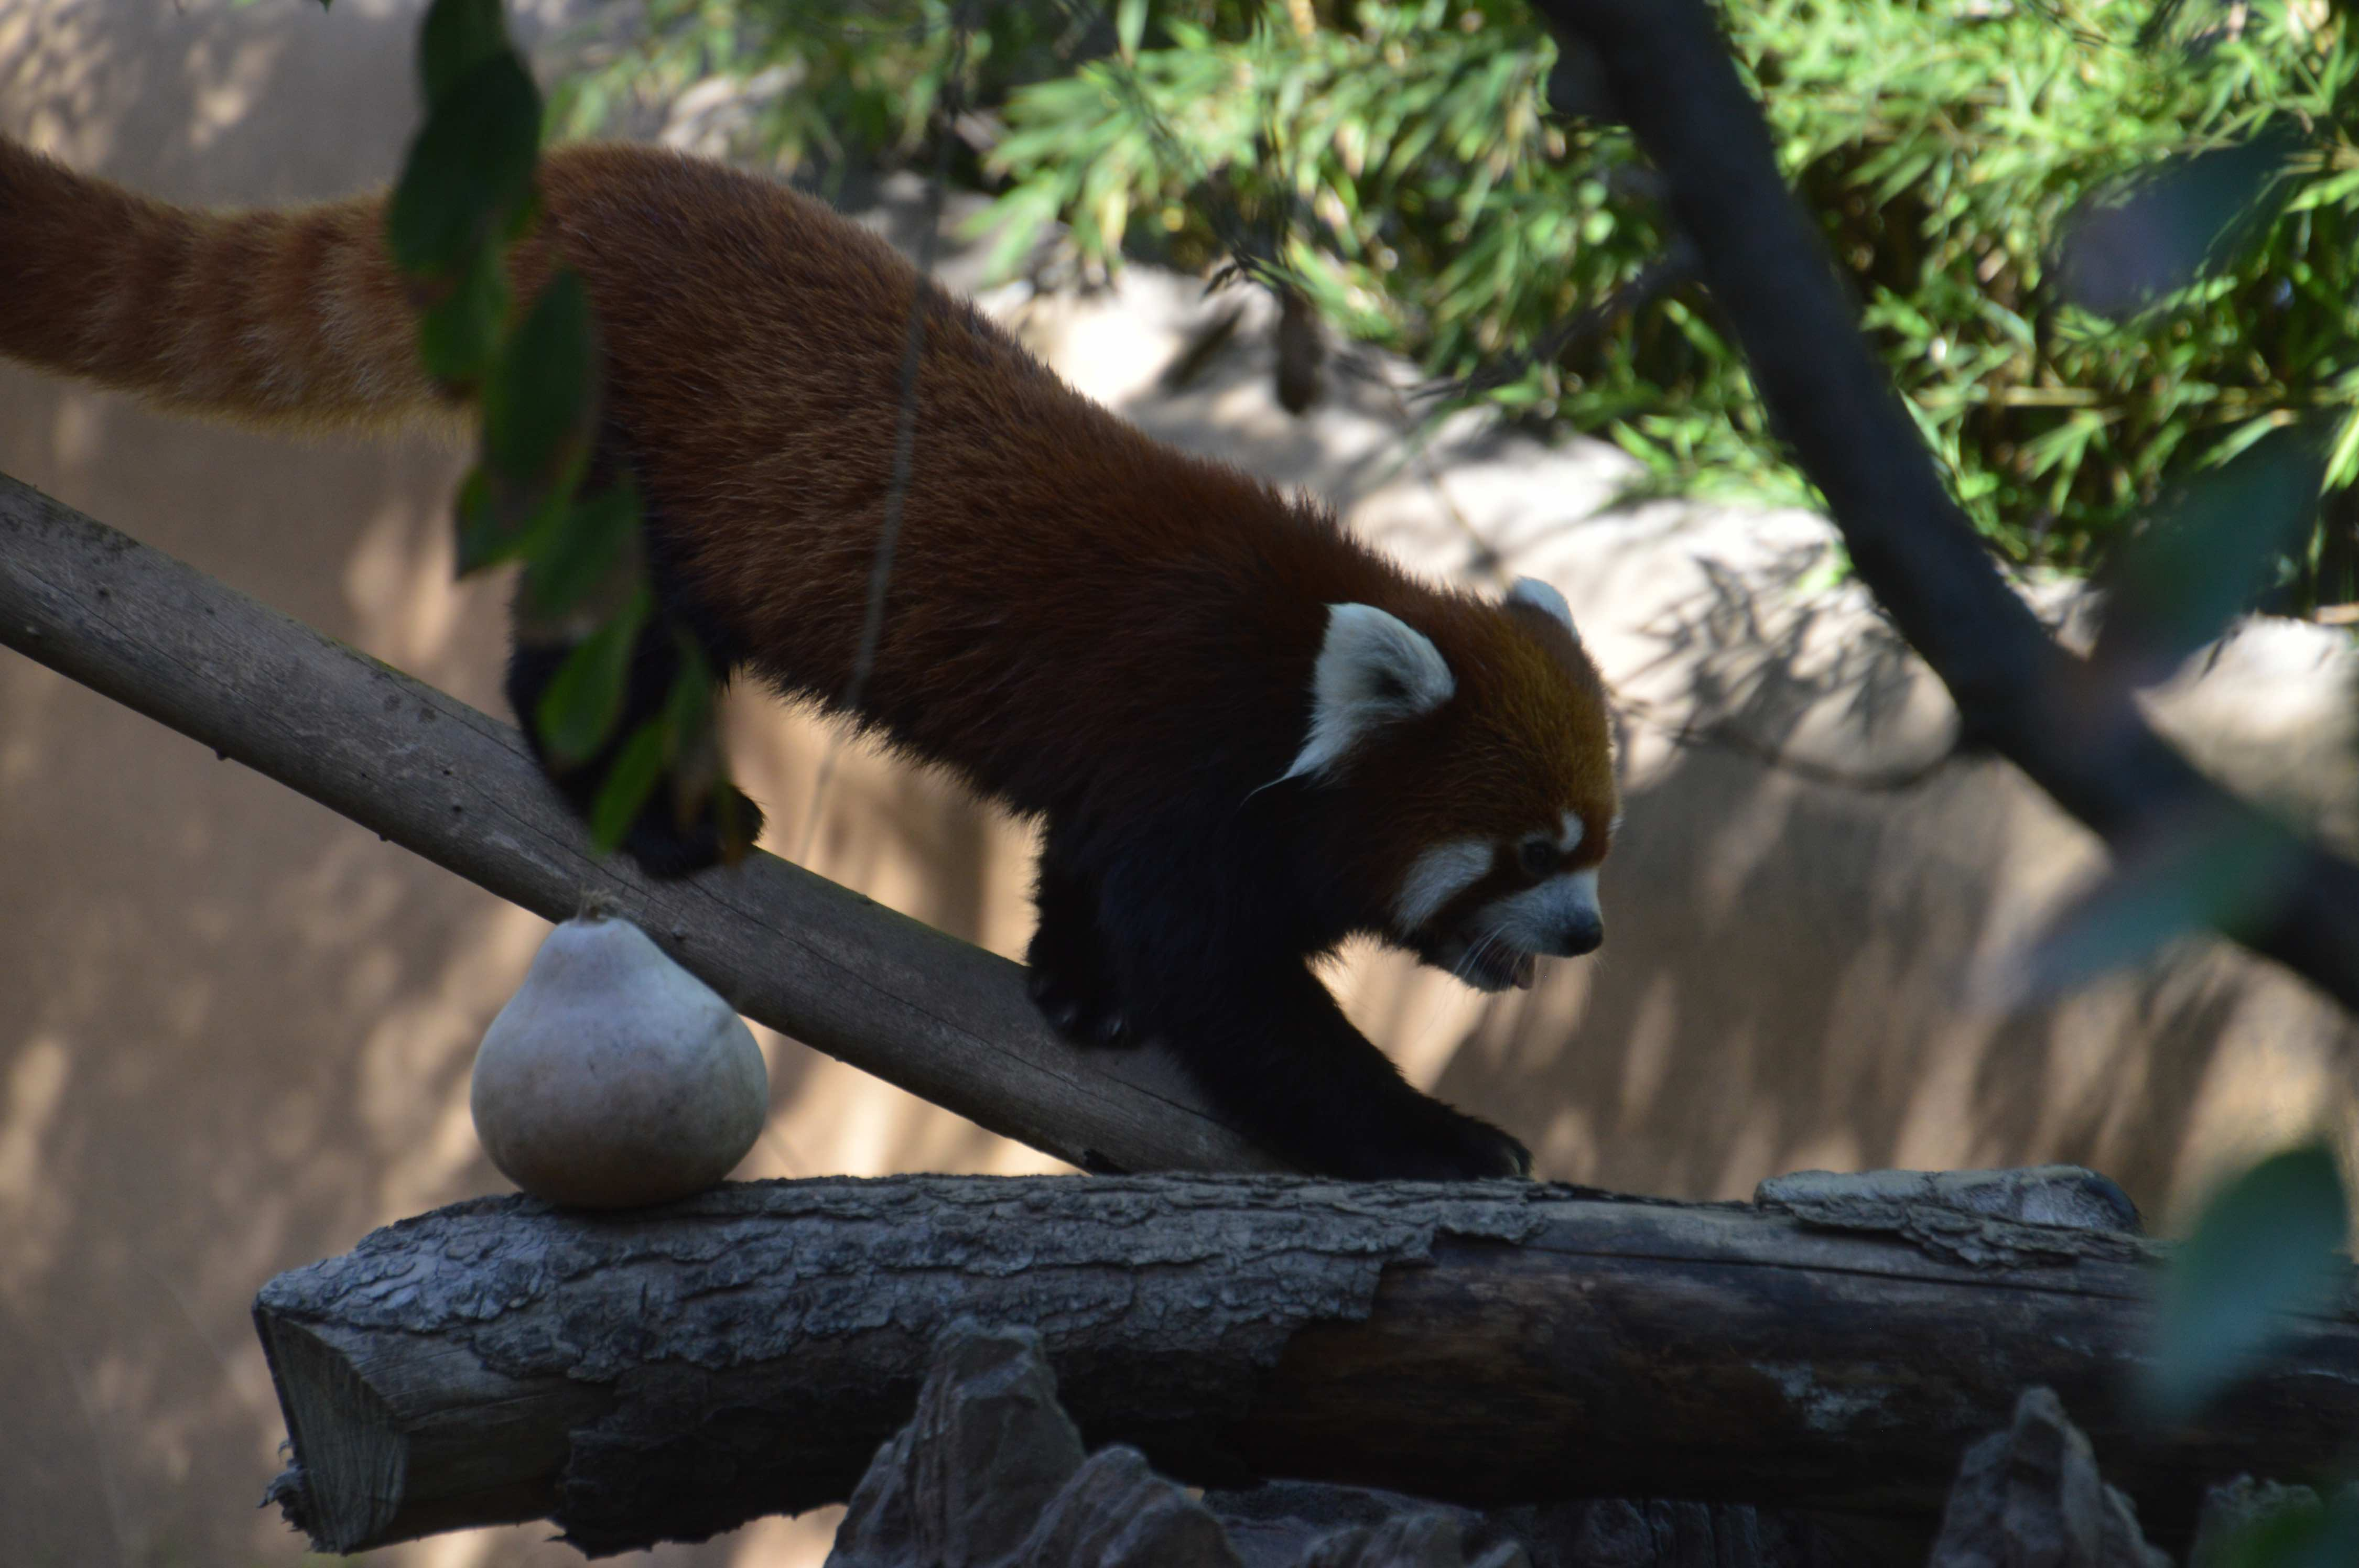 The red panda climbing around its enclosure and headed toward a favorite perch.